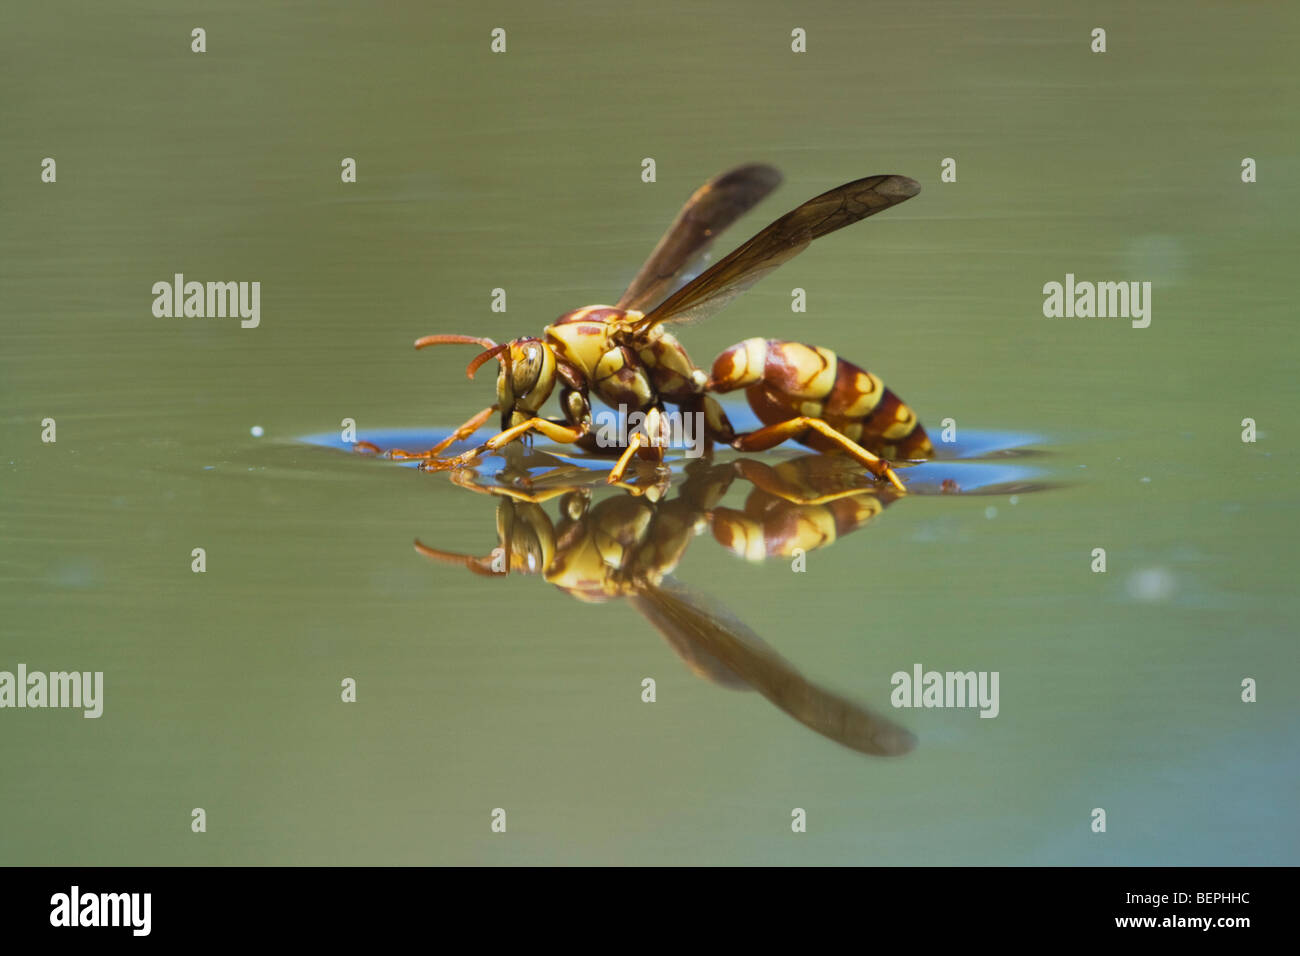 Paper Wasp (Polistes sp.), wasp drinking from water surface, Rio Grande Valley, Texas, USA - Stock Image